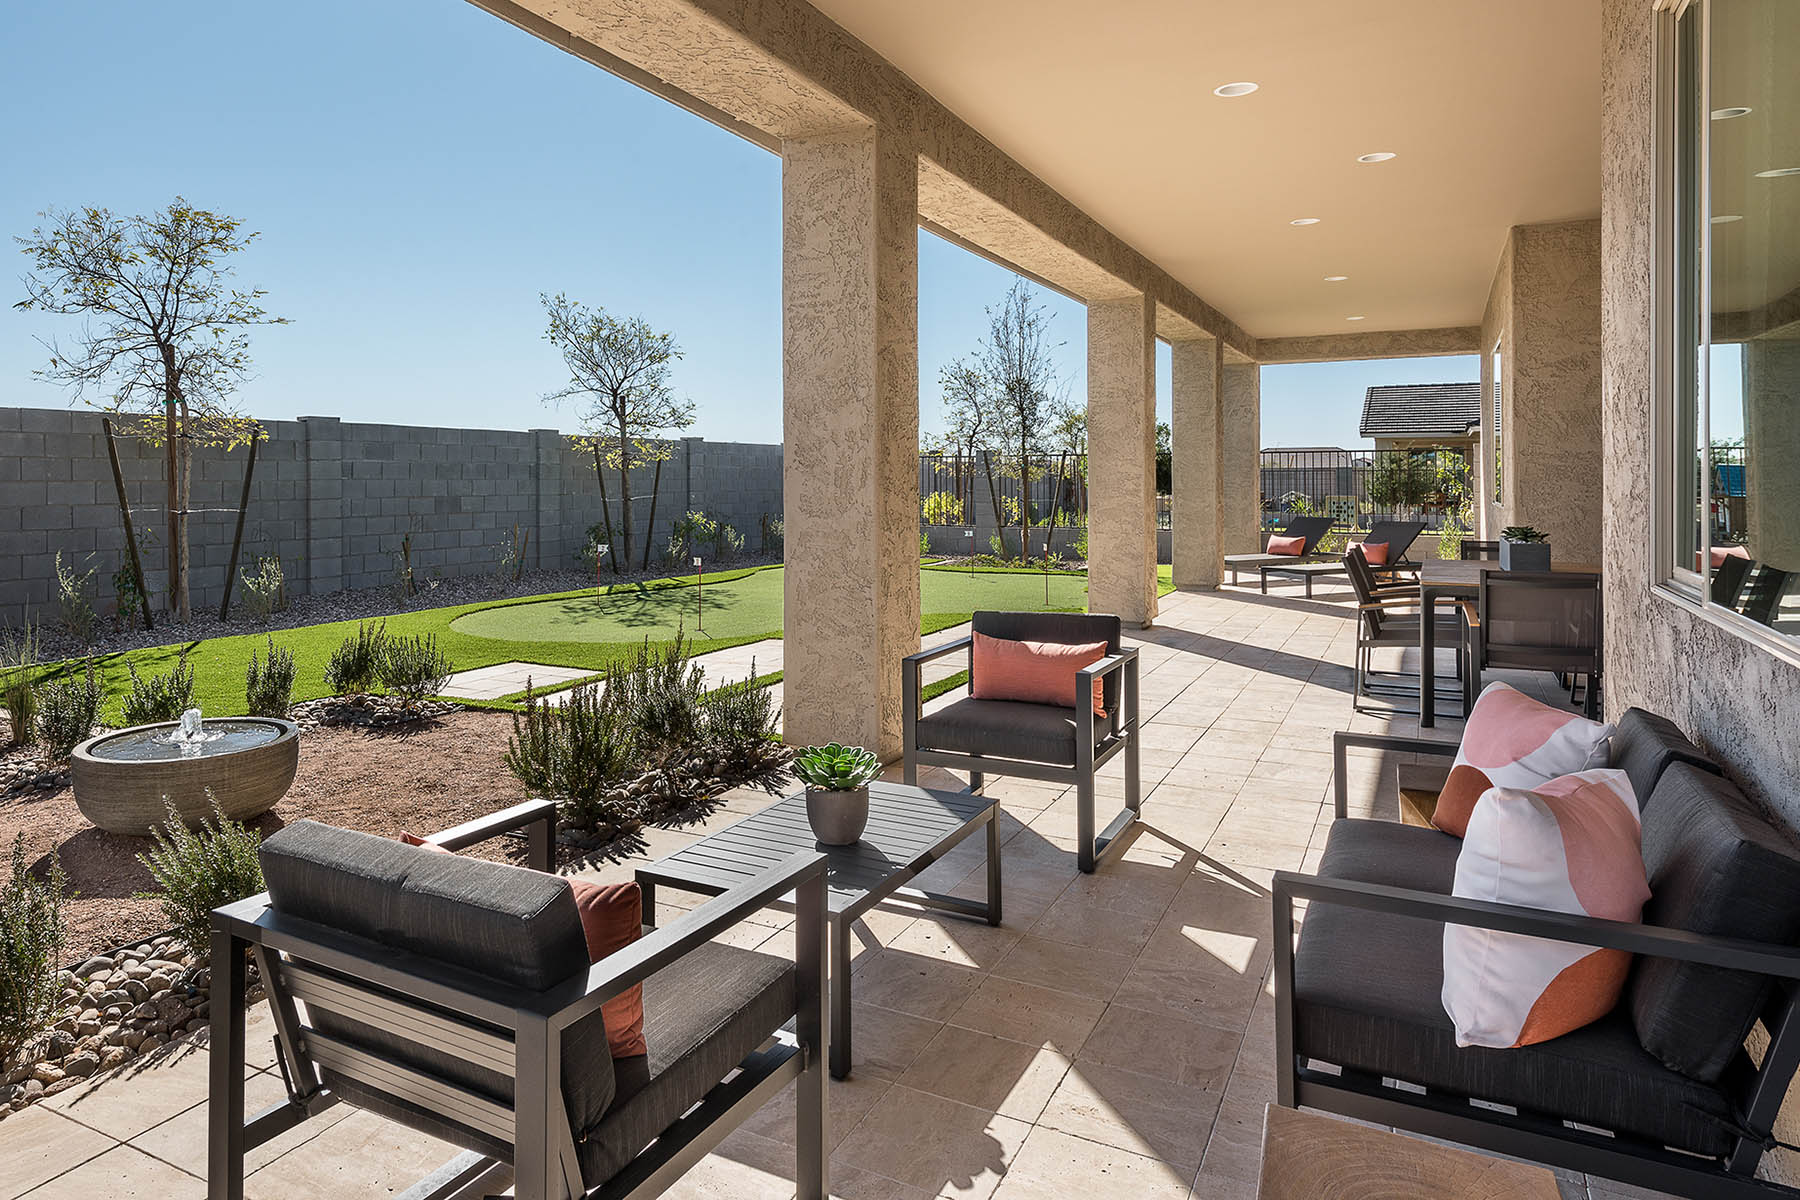 Castleton Plan Patio at Azure Canyon in Litchfield Park Arizona by Mattamy Homes